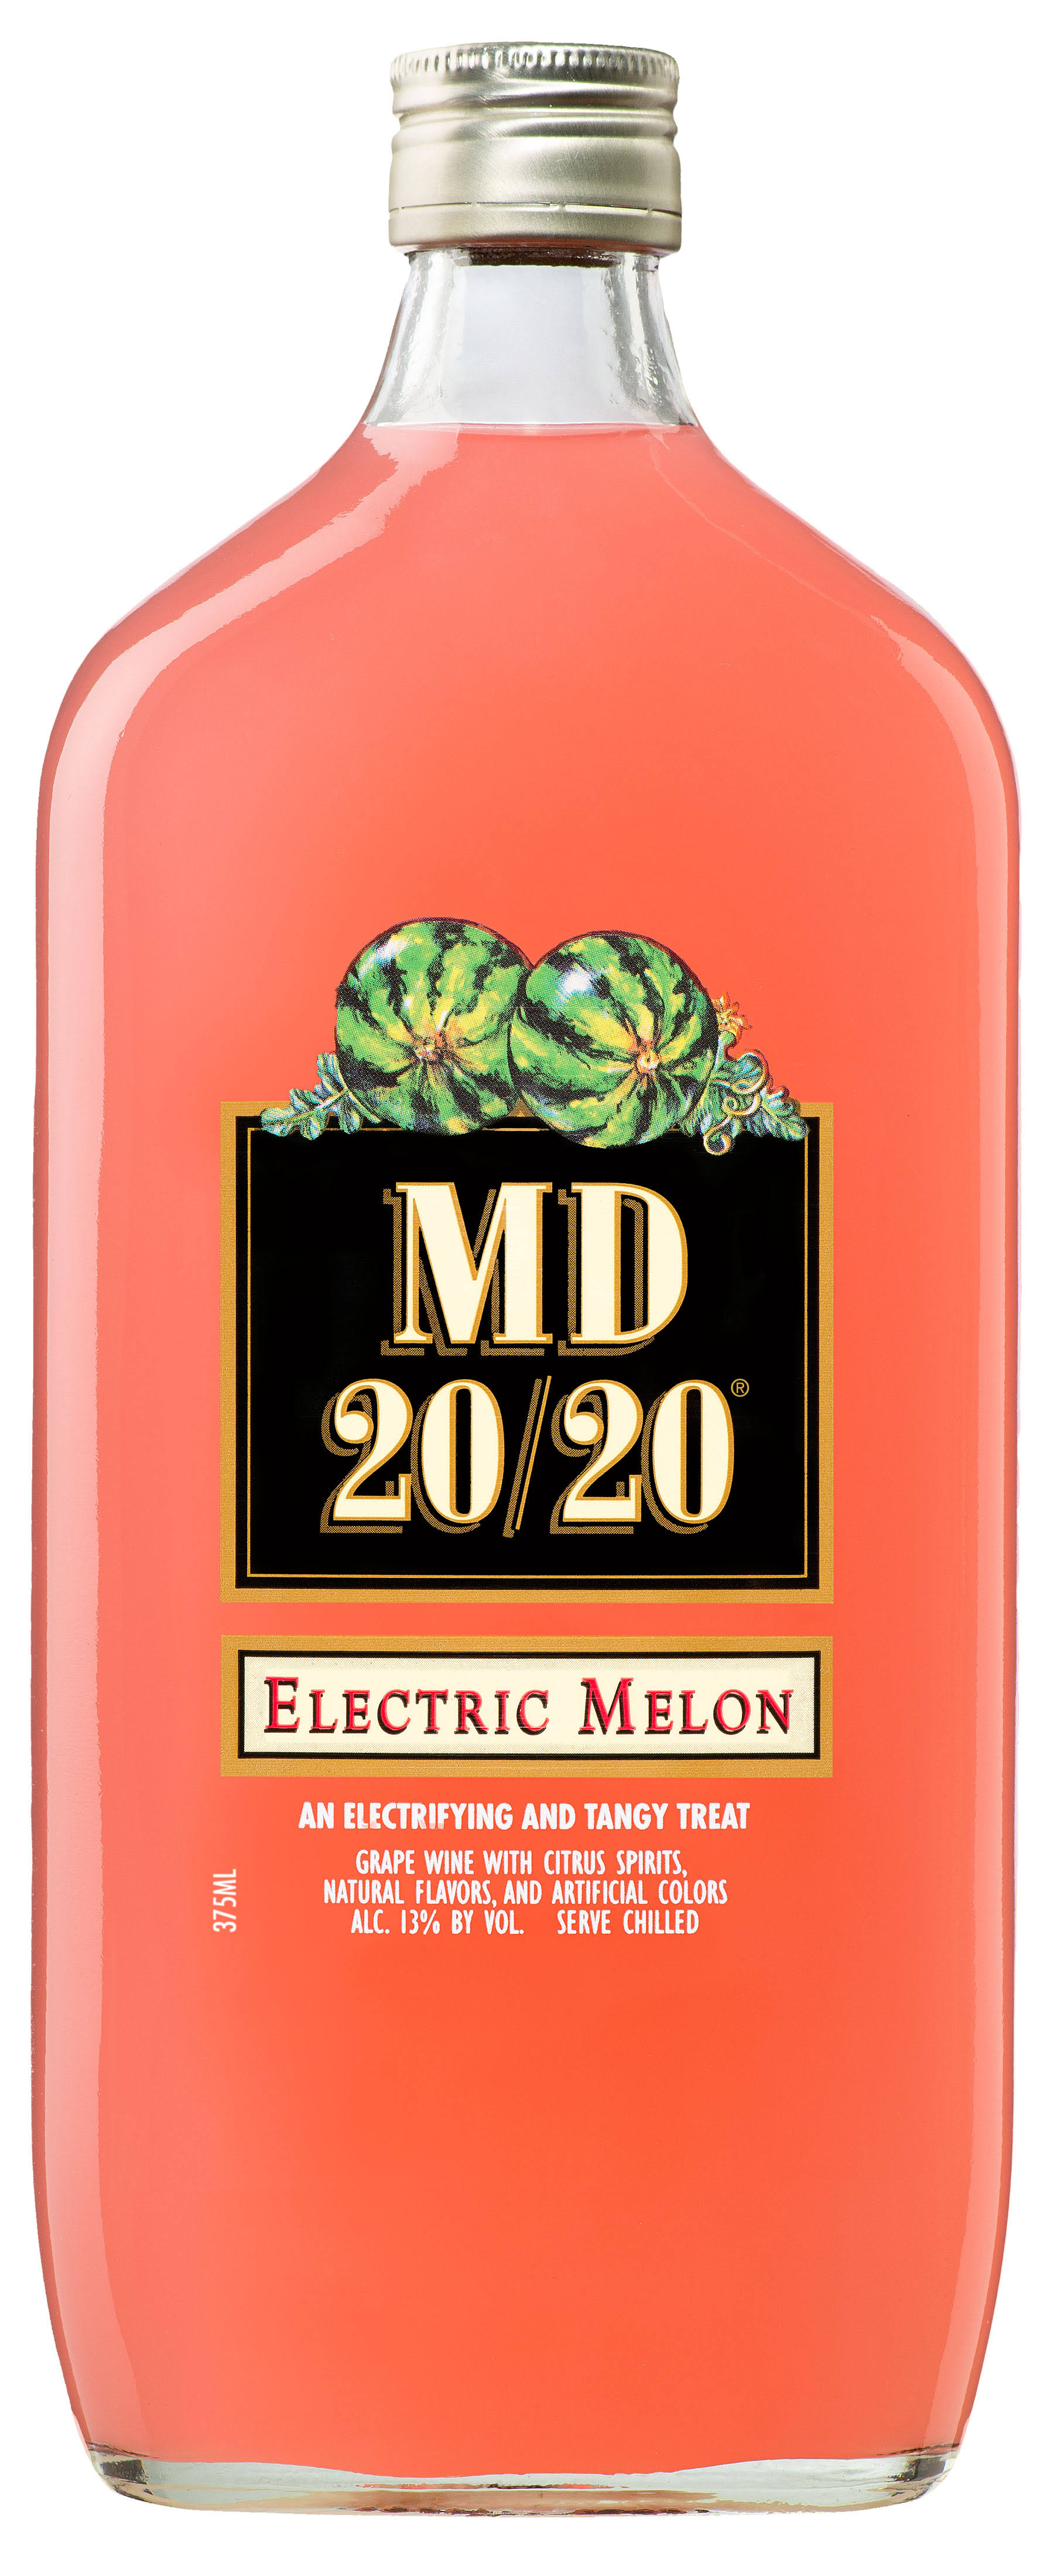 MD 20/20 Electric Melon Flavored Wine - 375ml